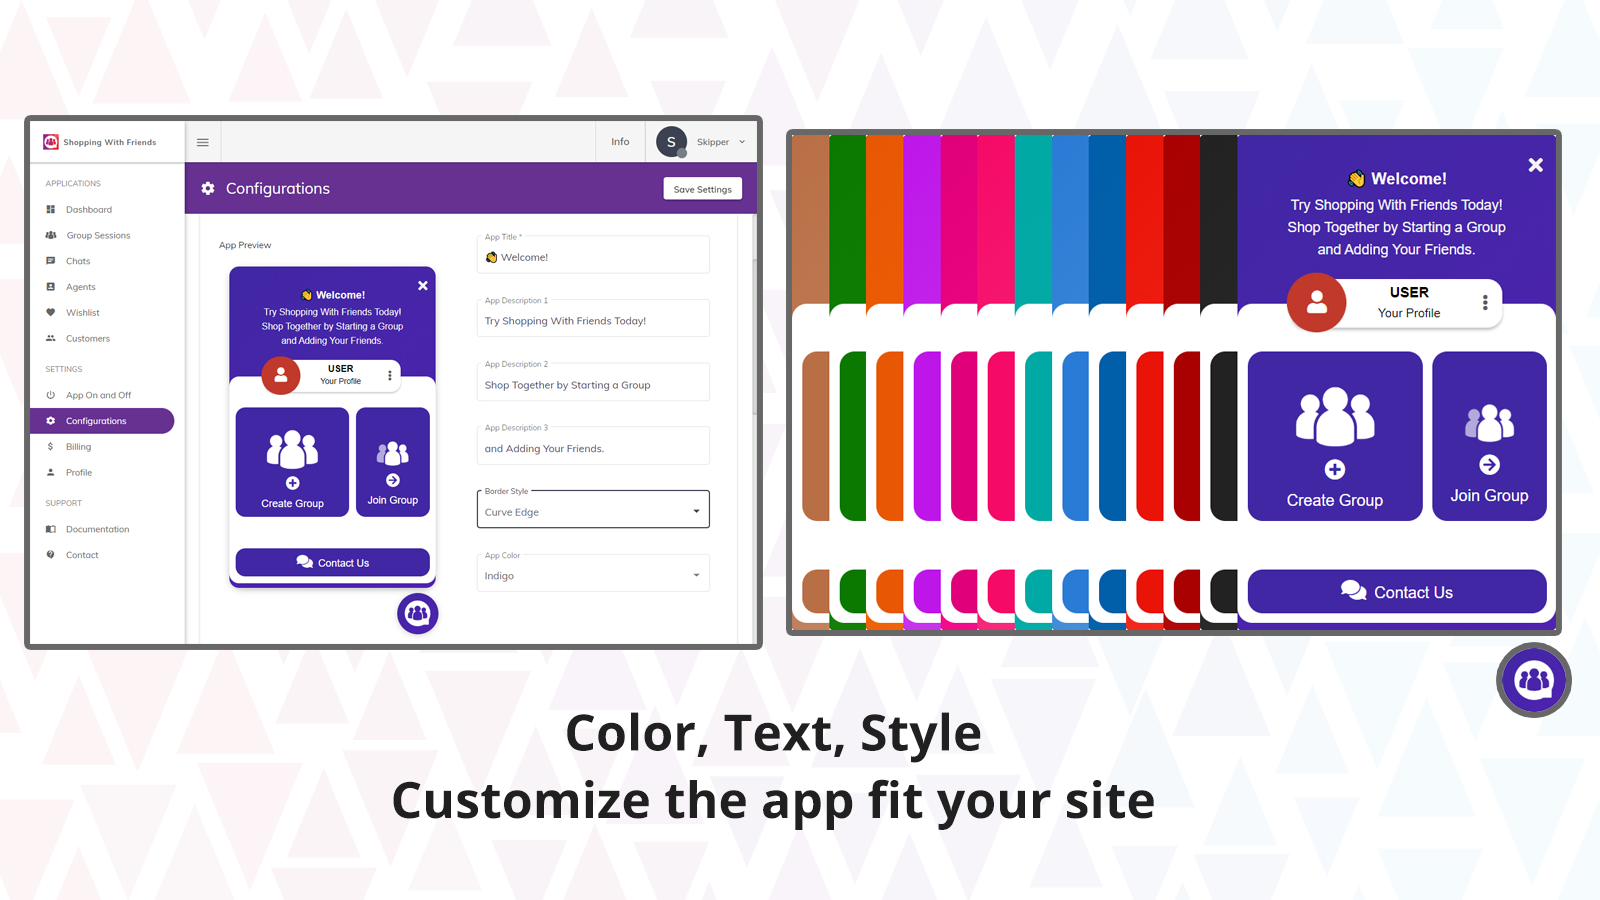 Back End - Customize the app